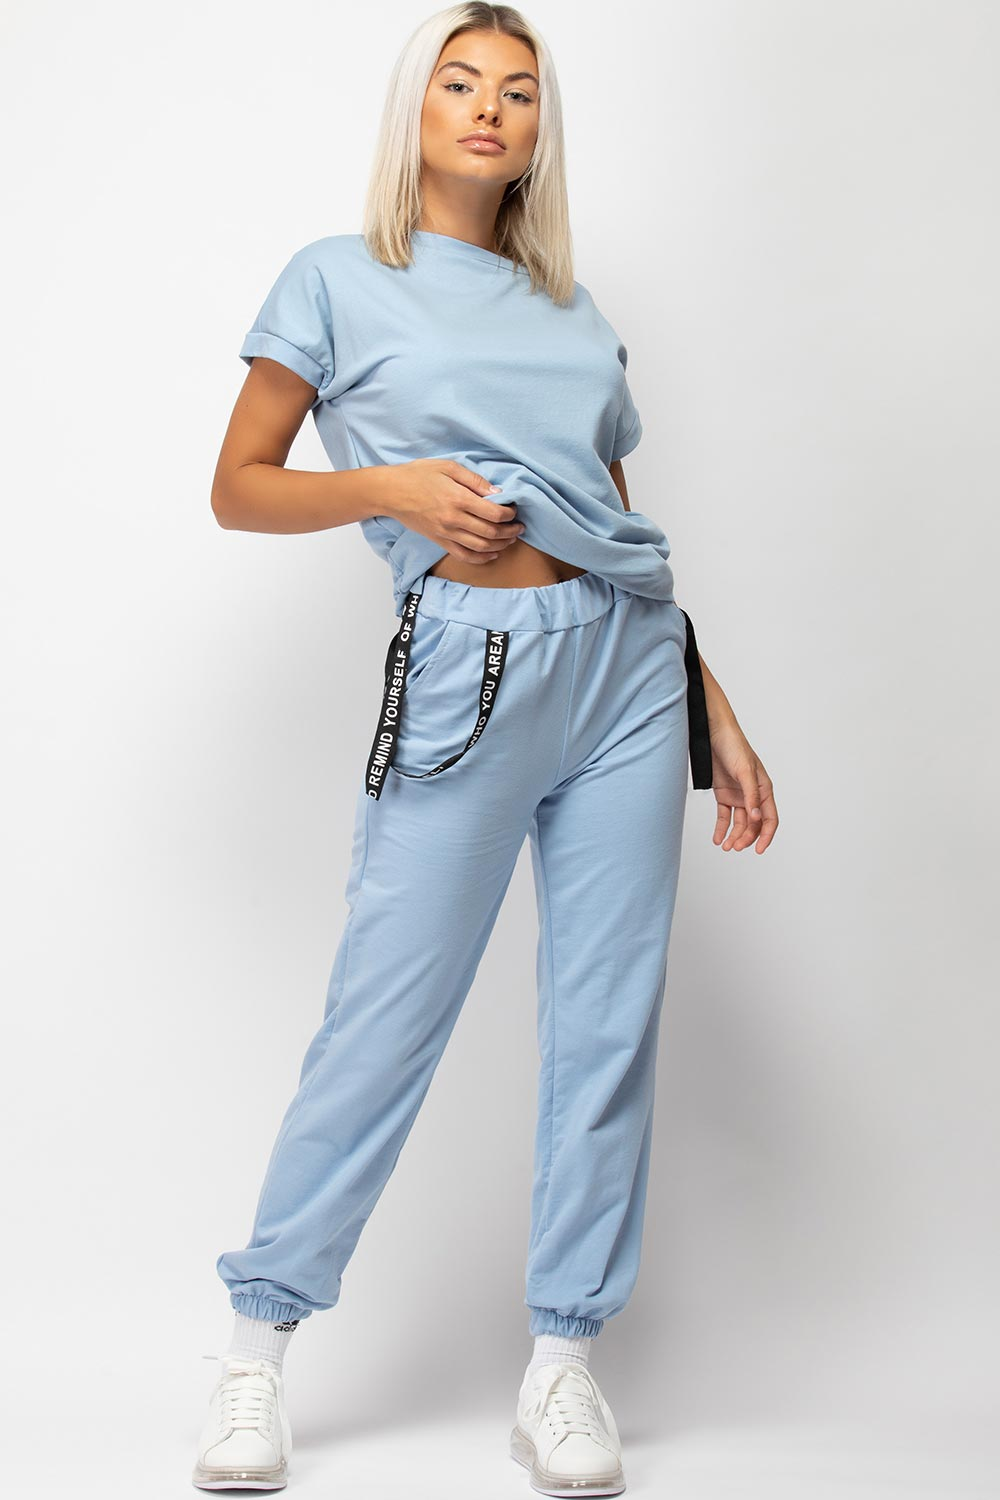 Sky Blue Boxy Lounge Set With Strap Detail